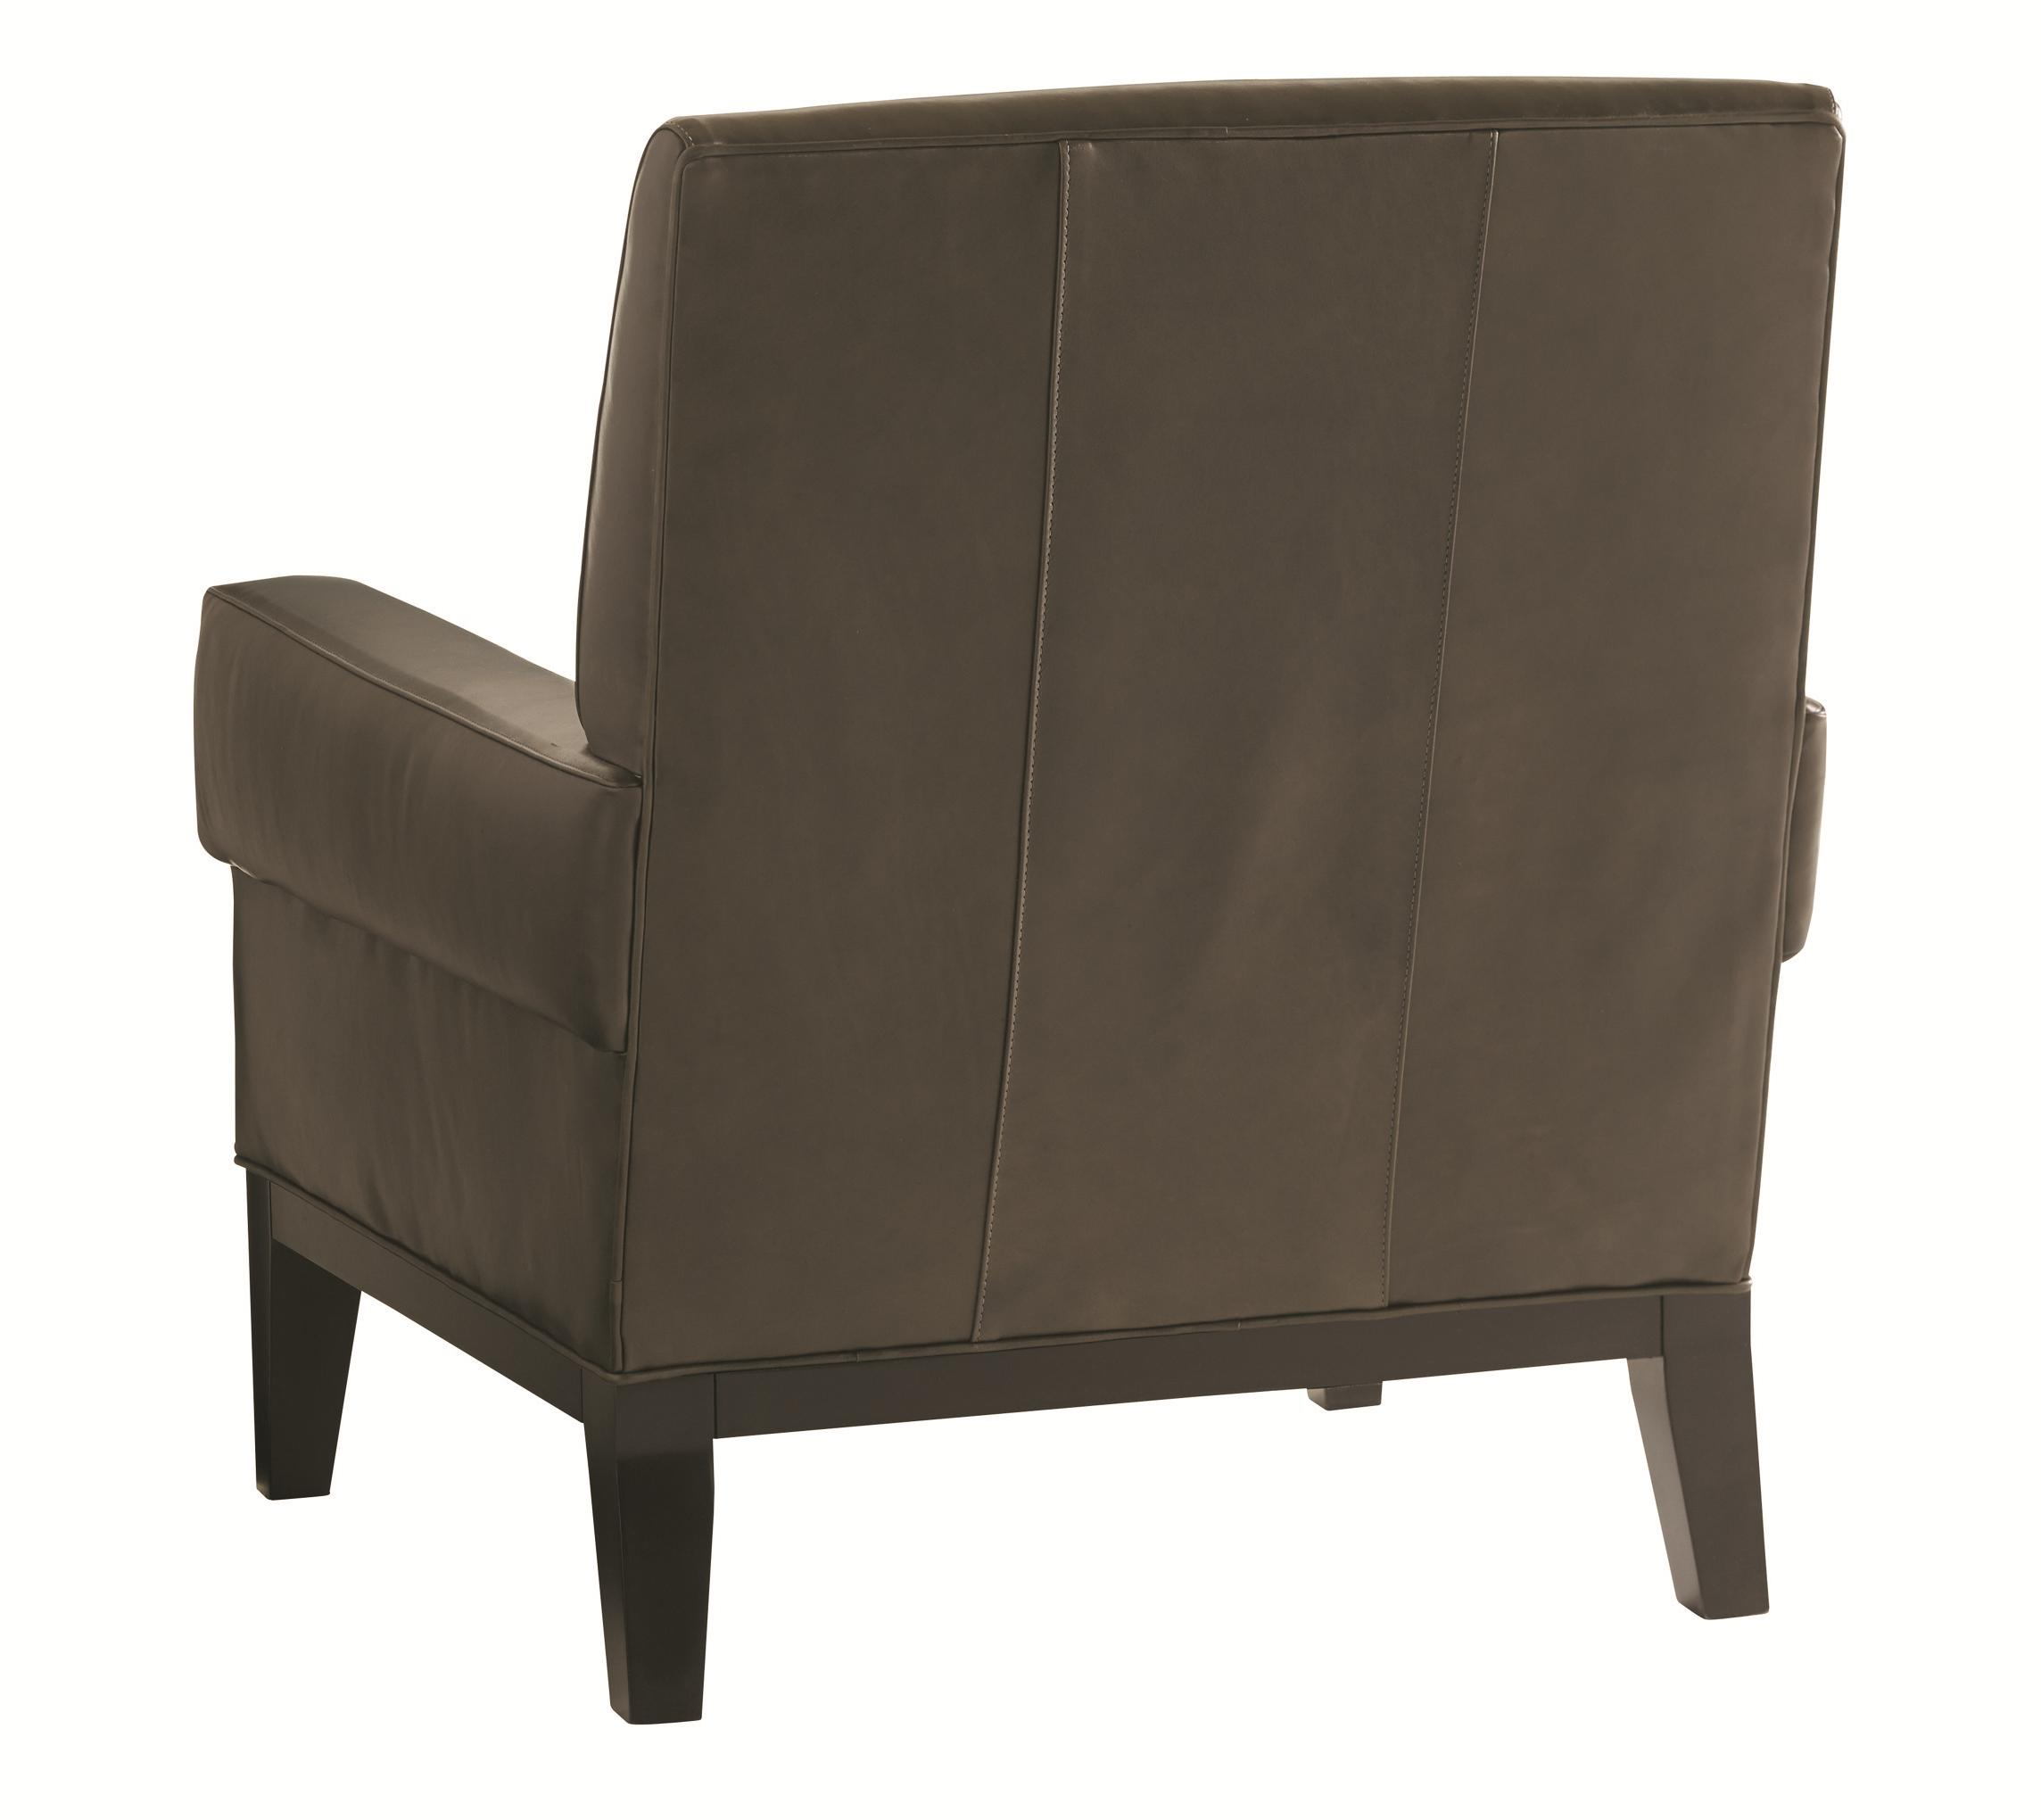 Lexington Carrera Giovanni Chair And Ottoman Set With Exposed Wood Base John V Schultz